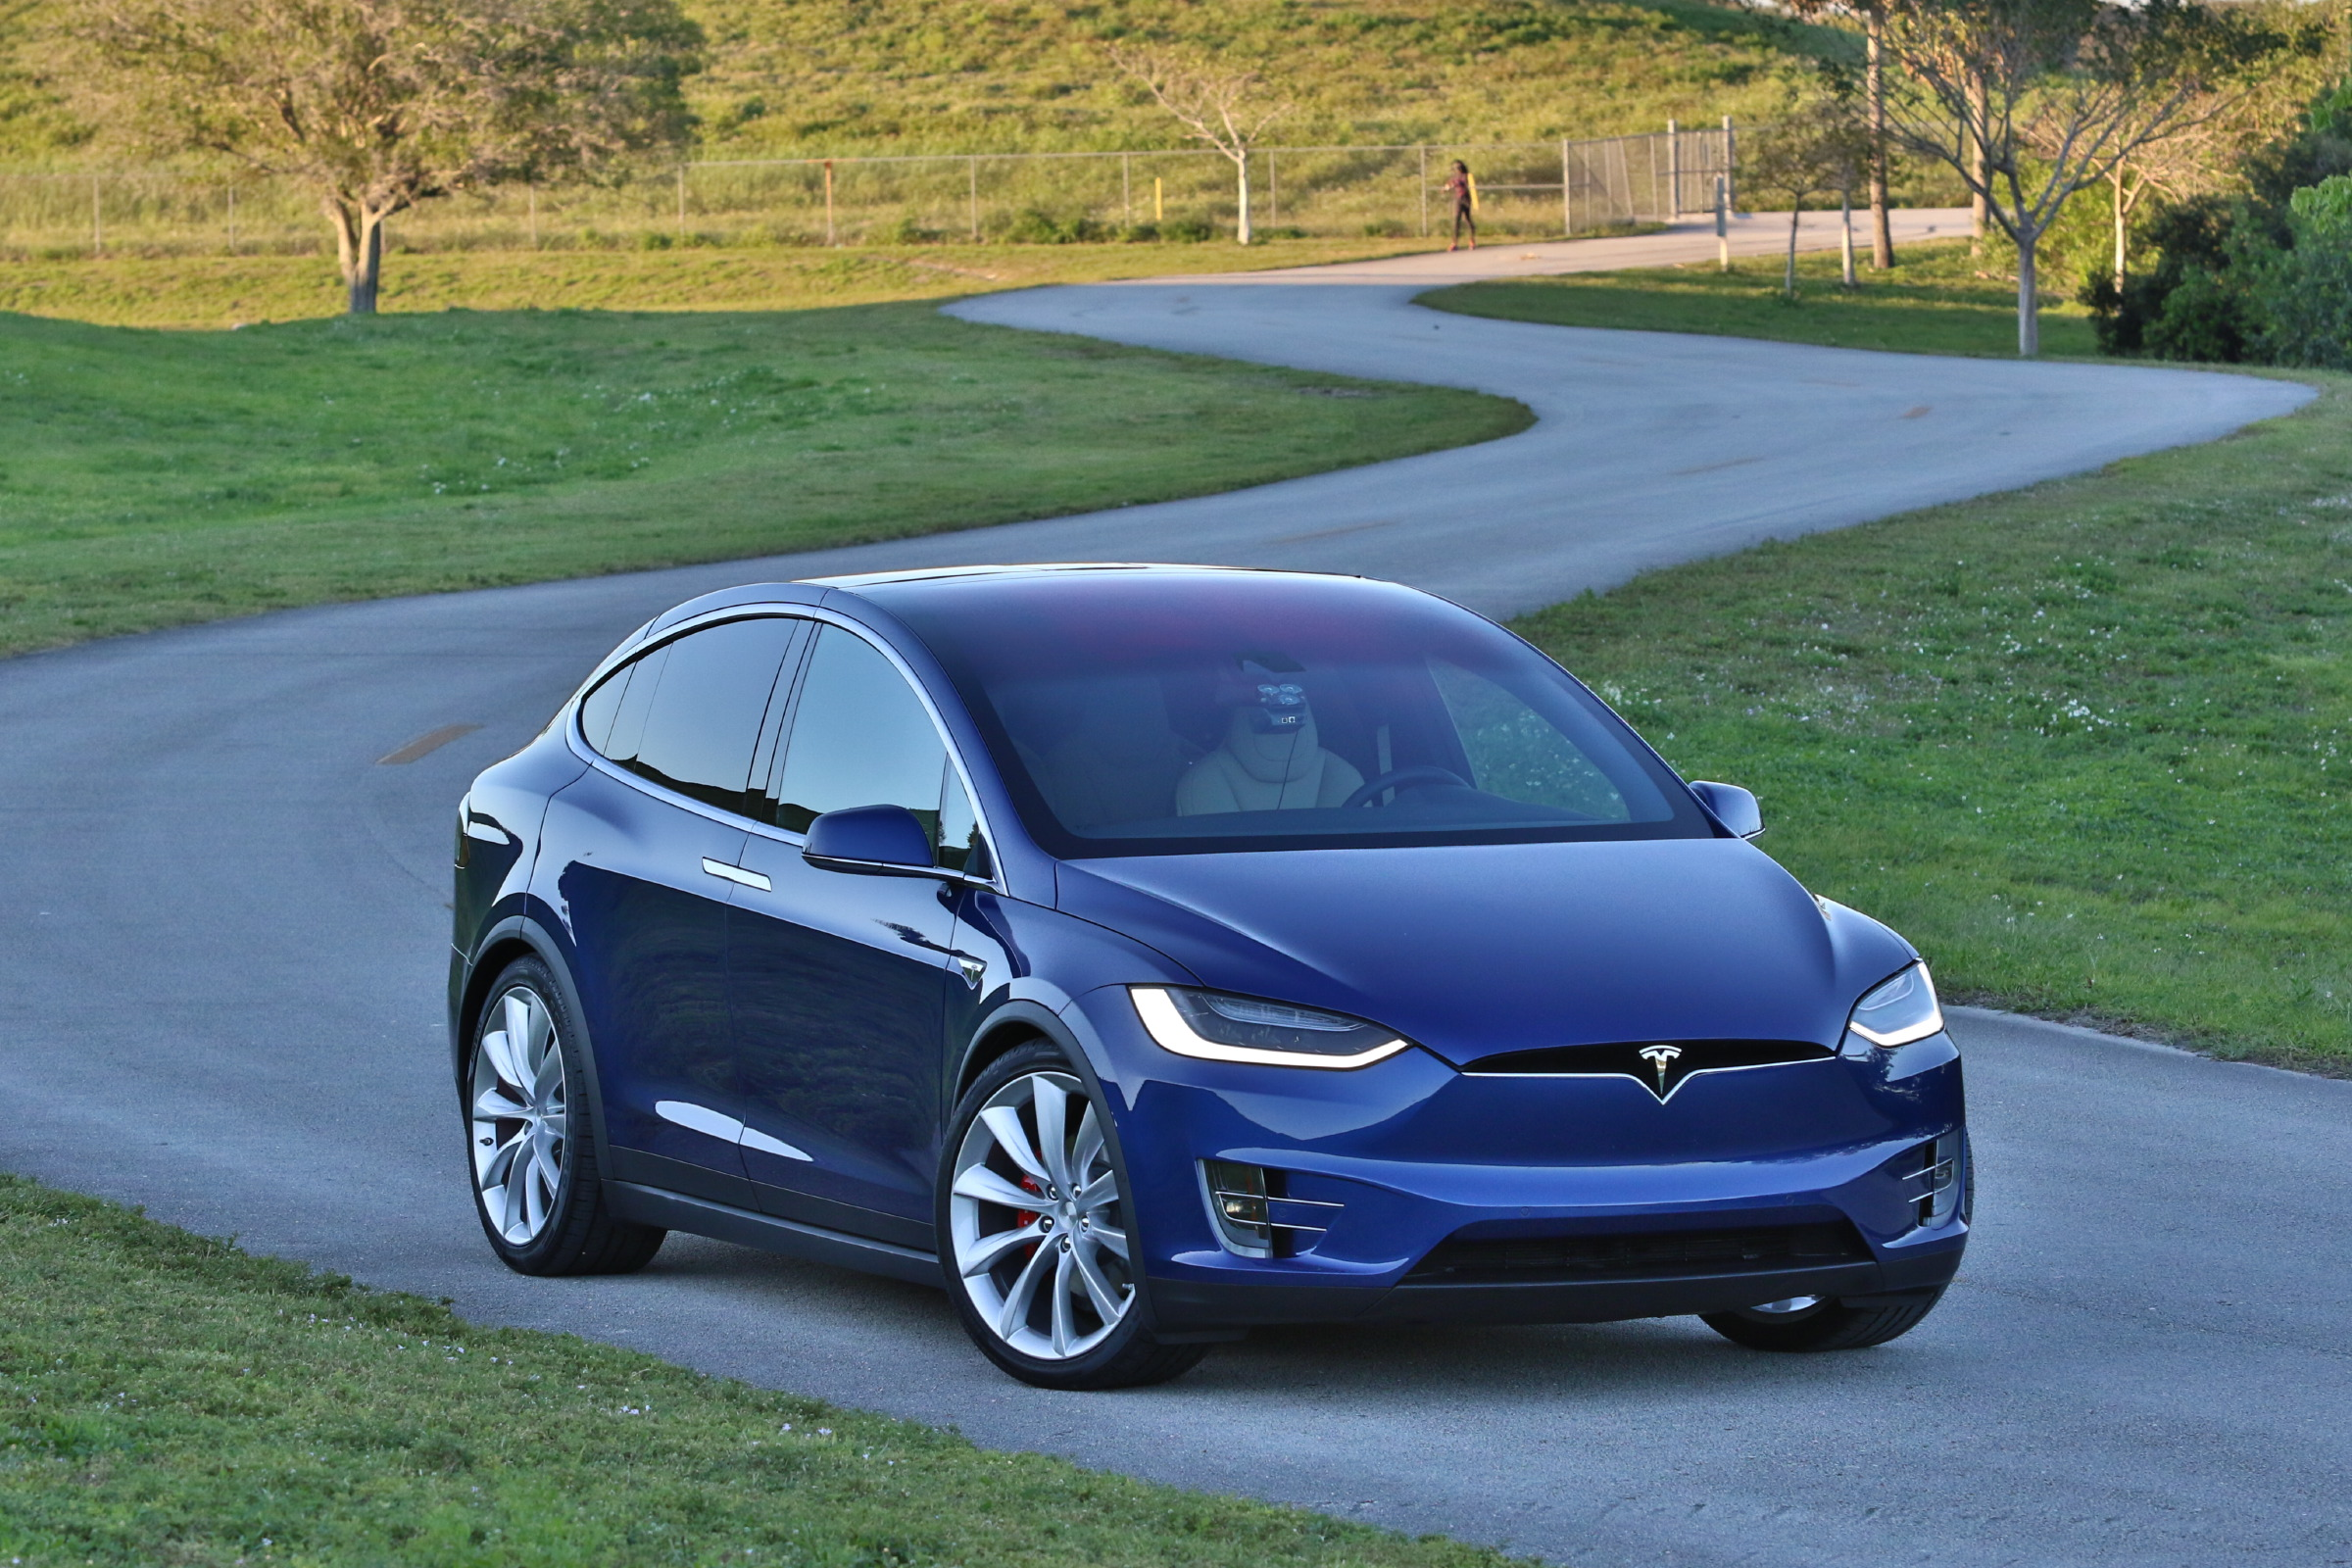 2016 tesla model x p90d deep blue metallic picture gallery drag racing fast. Black Bedroom Furniture Sets. Home Design Ideas